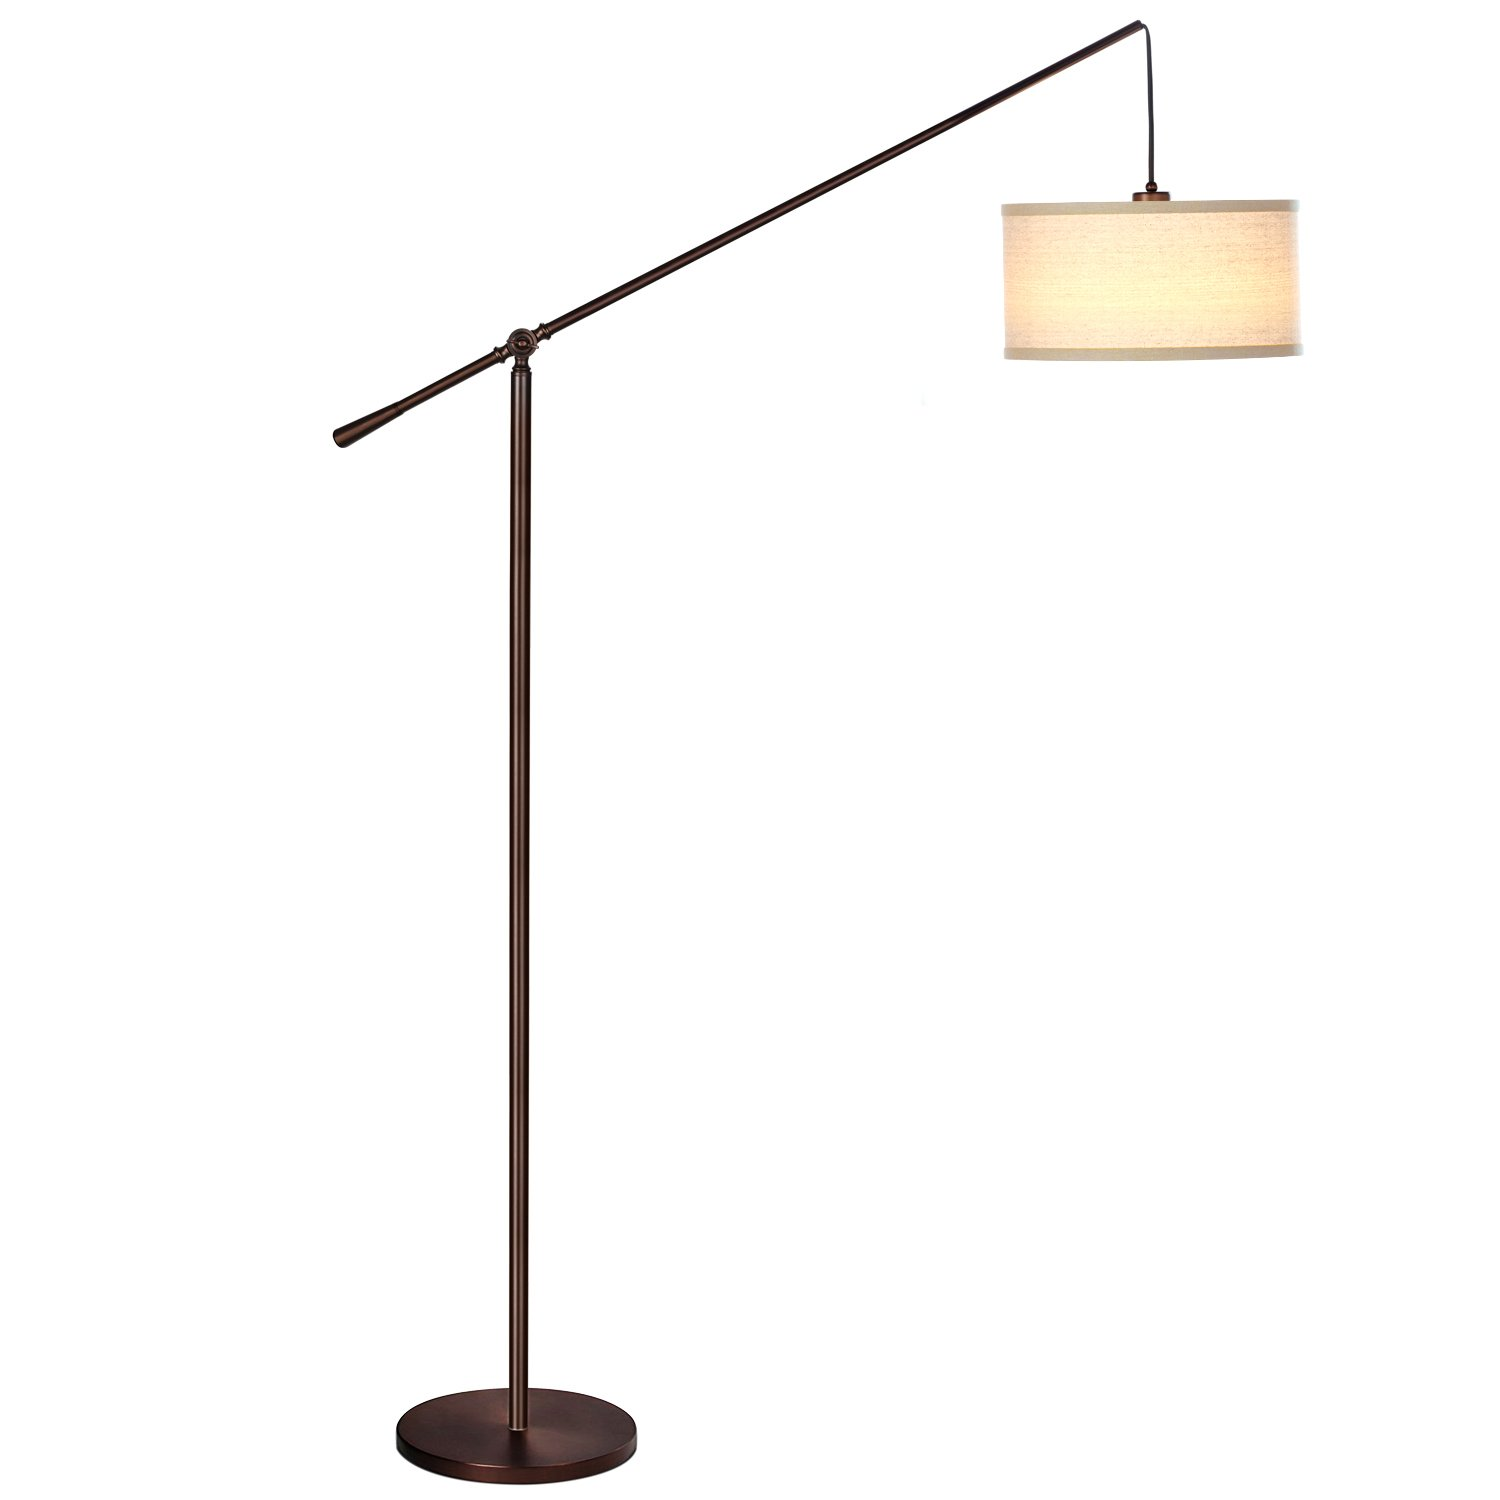 Brightech Hudson 2 - Living Room LED Arc Floor Lamp for Behind The Couch - Alexa Compatible Pole Hanging Light to Stand up Over The Sofa - with LED Bulb- Oil Brushed Bronze